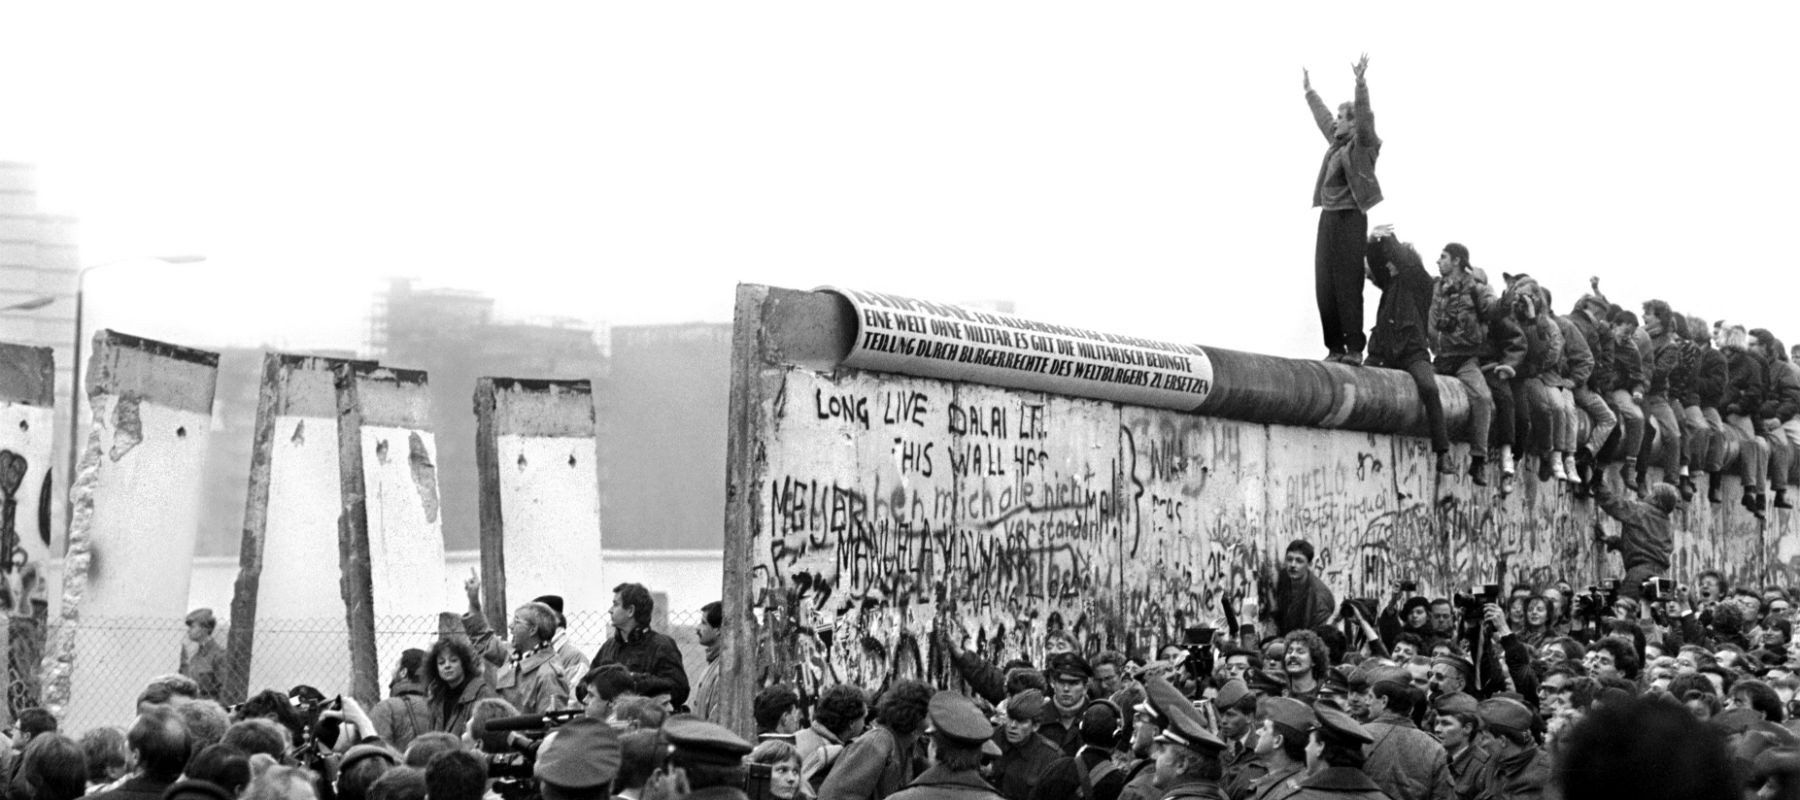 berlin wall essay questions Berlin wall essaysmy topic is the fall of the berlin wall , communism and politics the berlin wall was built in 1961 the wall was built to divide the eastside and the west communist.